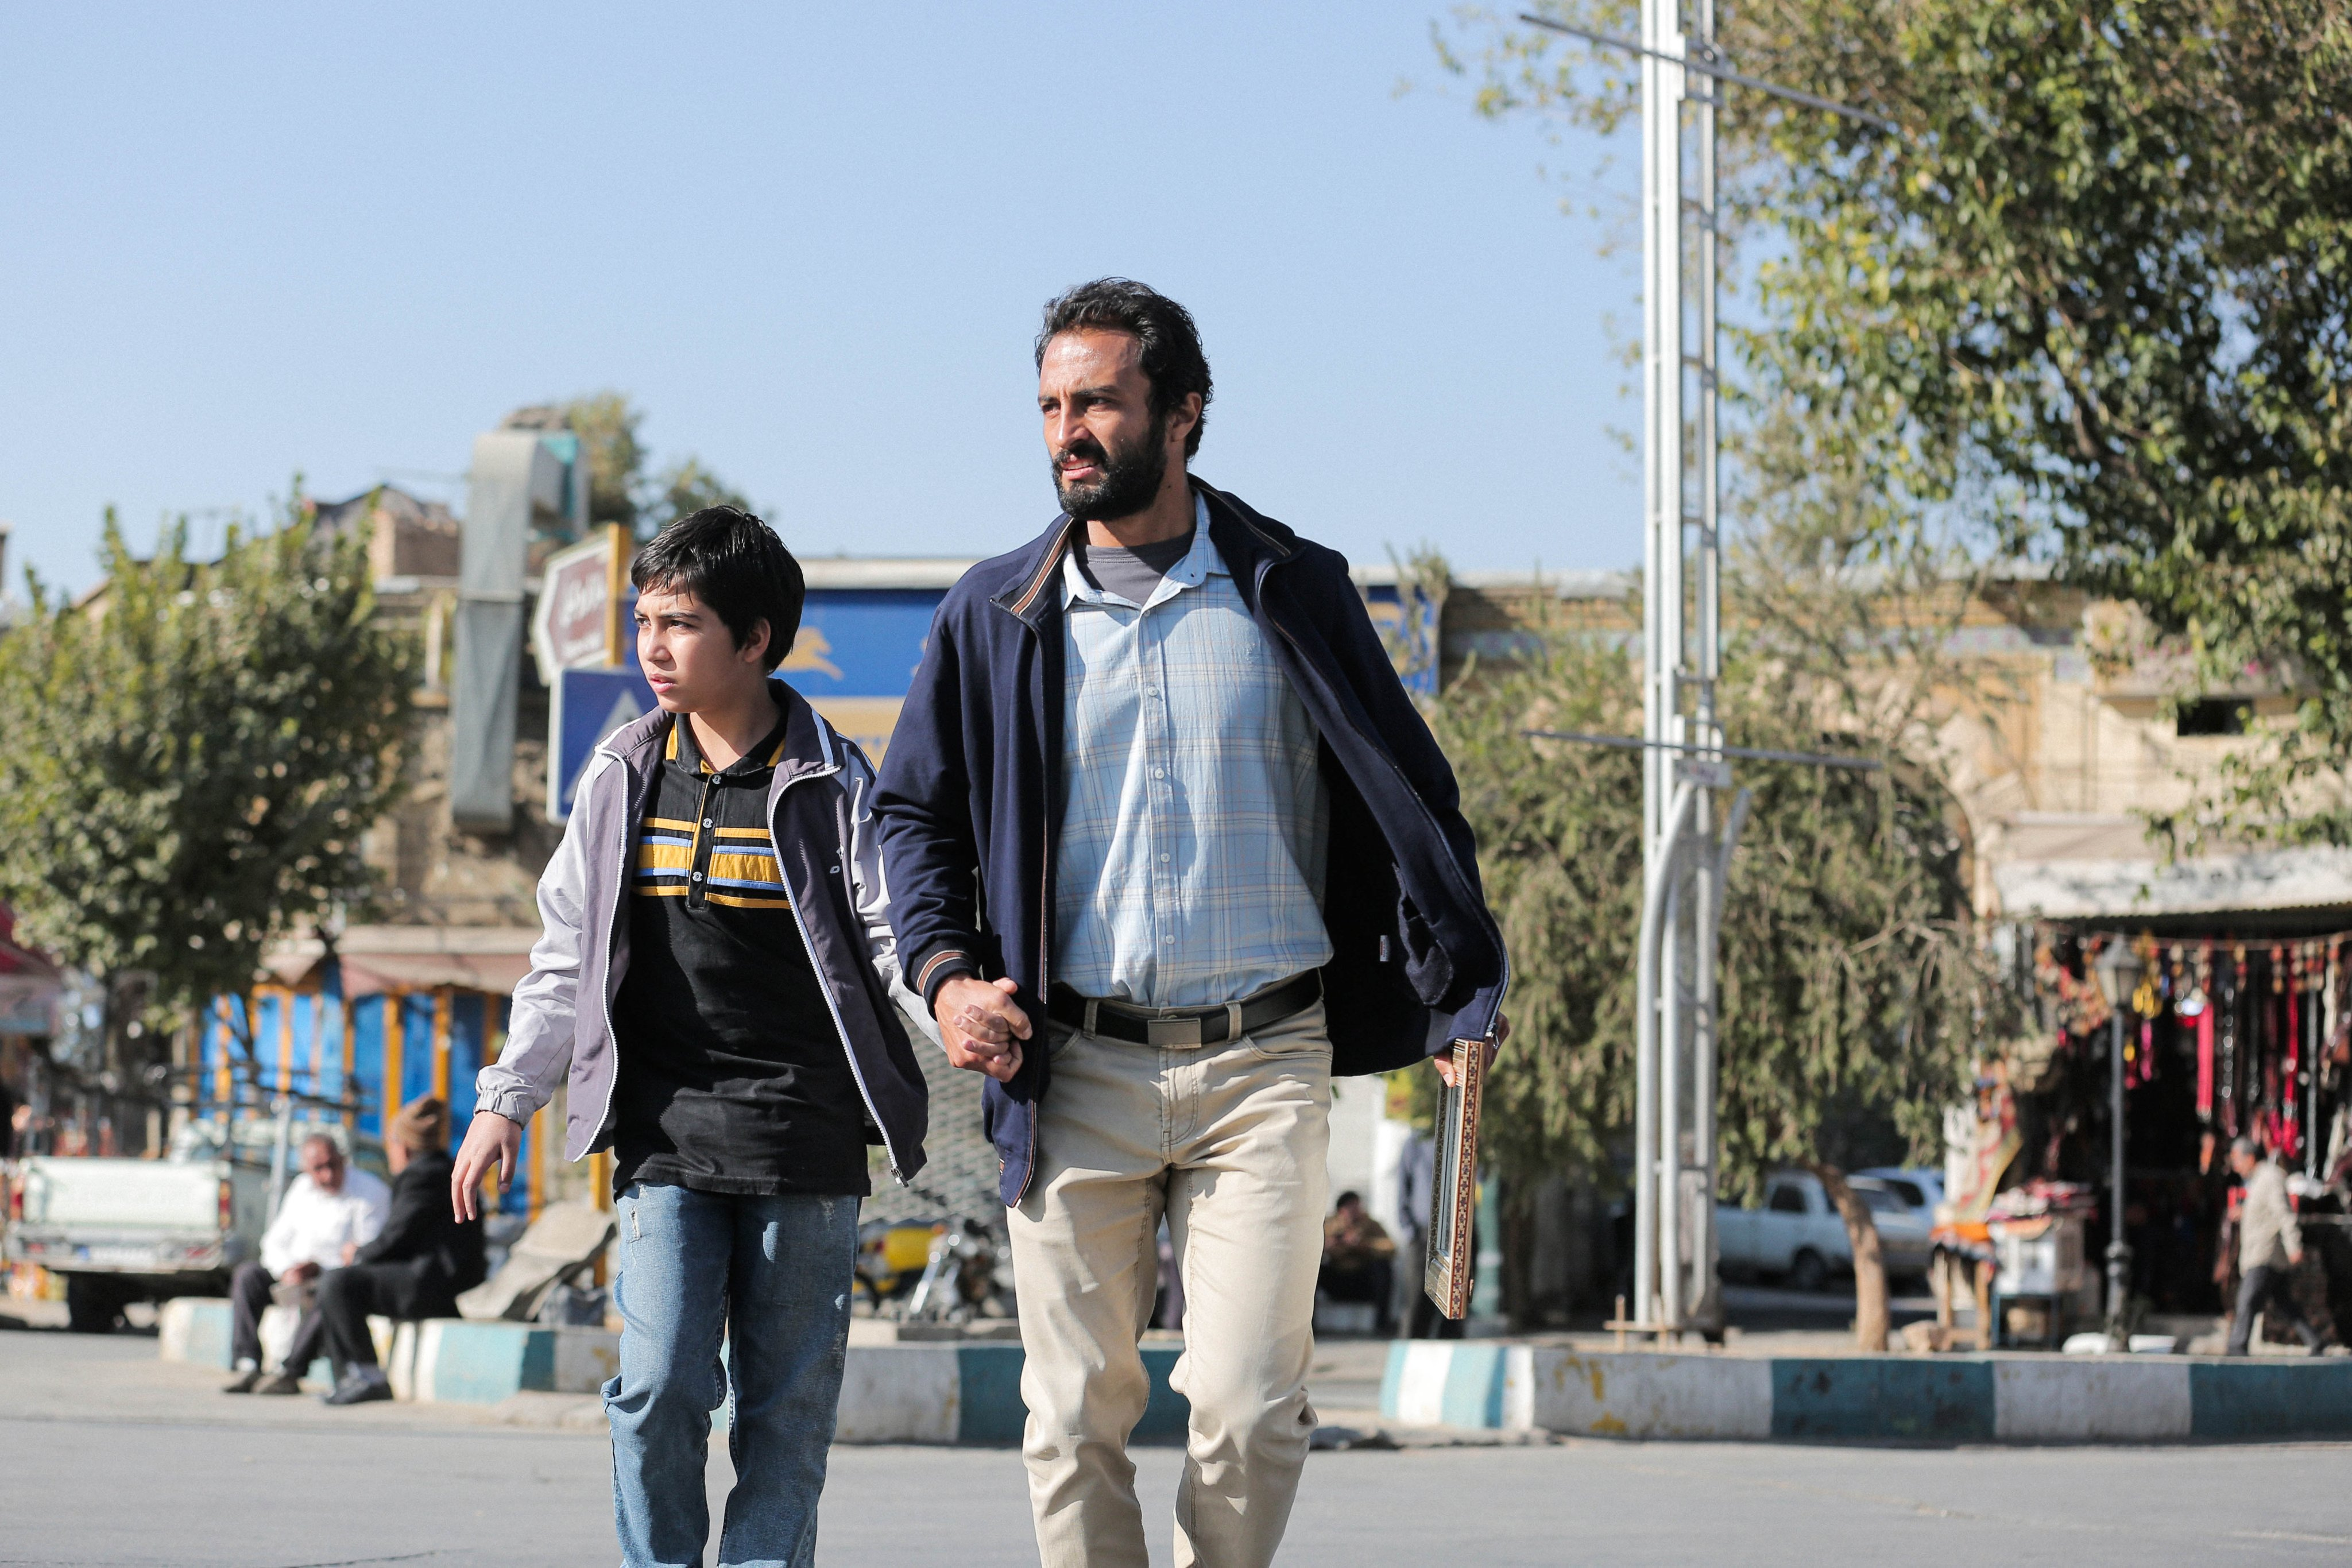 Amir Jadid holds the hand of a young boy as they walk around a plaza in the daytime.